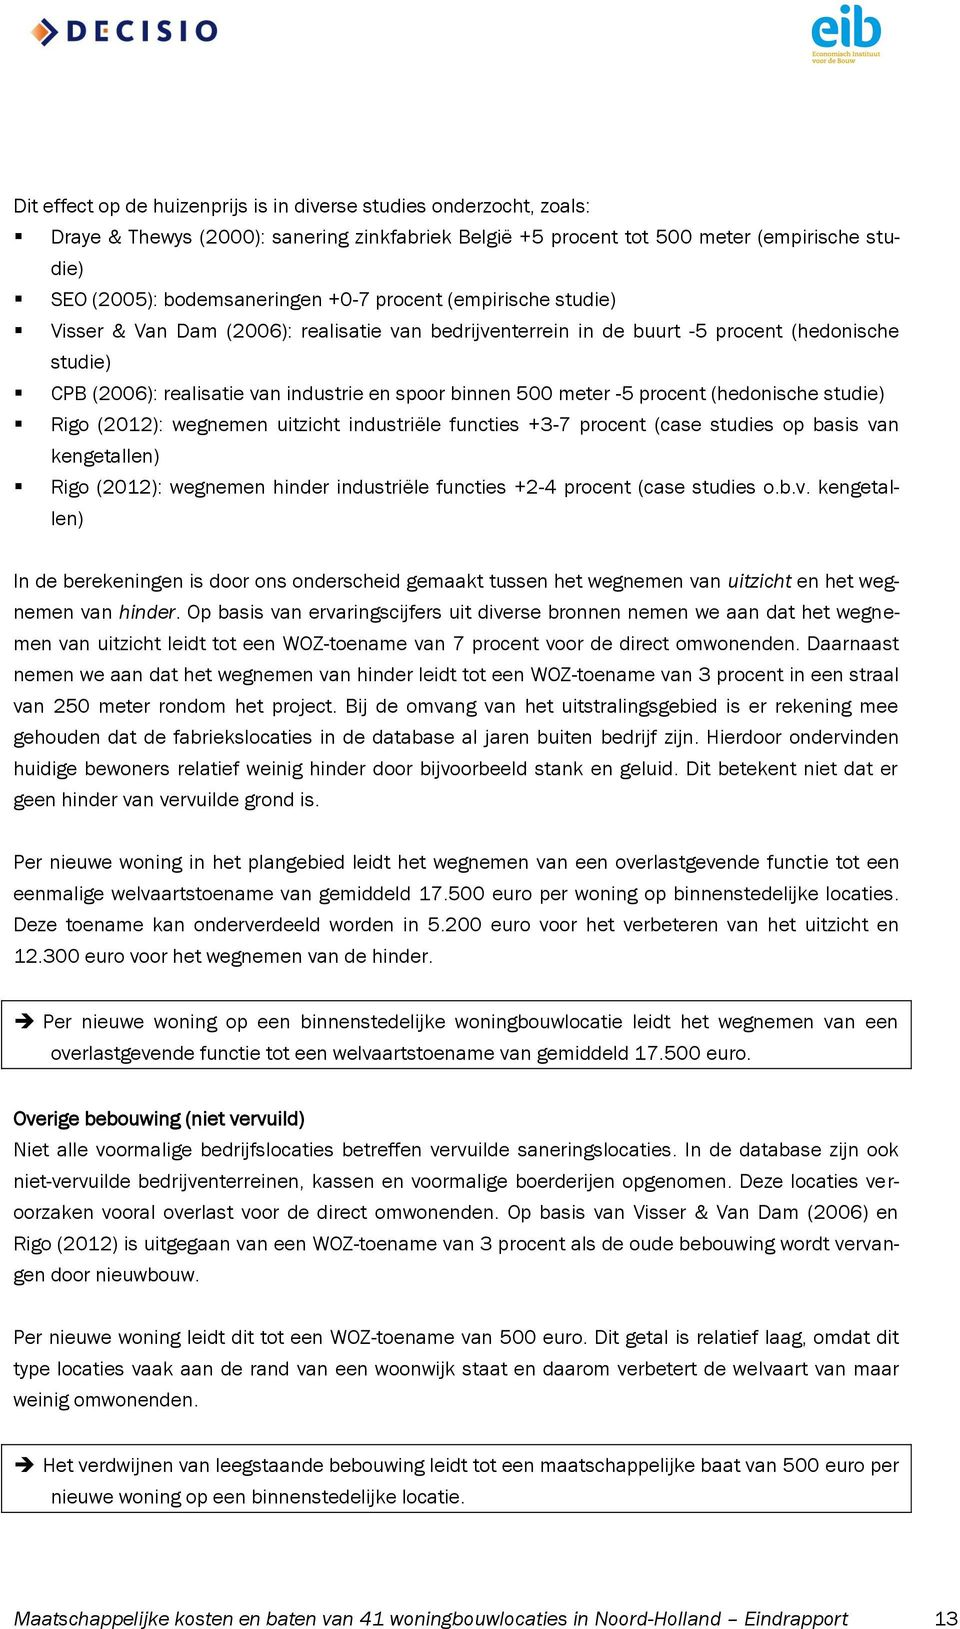 procent (hedonische studie) Rigo (2012): wegnemen uitzicht industriële functies +3-7 procent (case studies op basis van kengetallen) Rigo (2012): wegnemen hinder industriële functies +2-4 procent